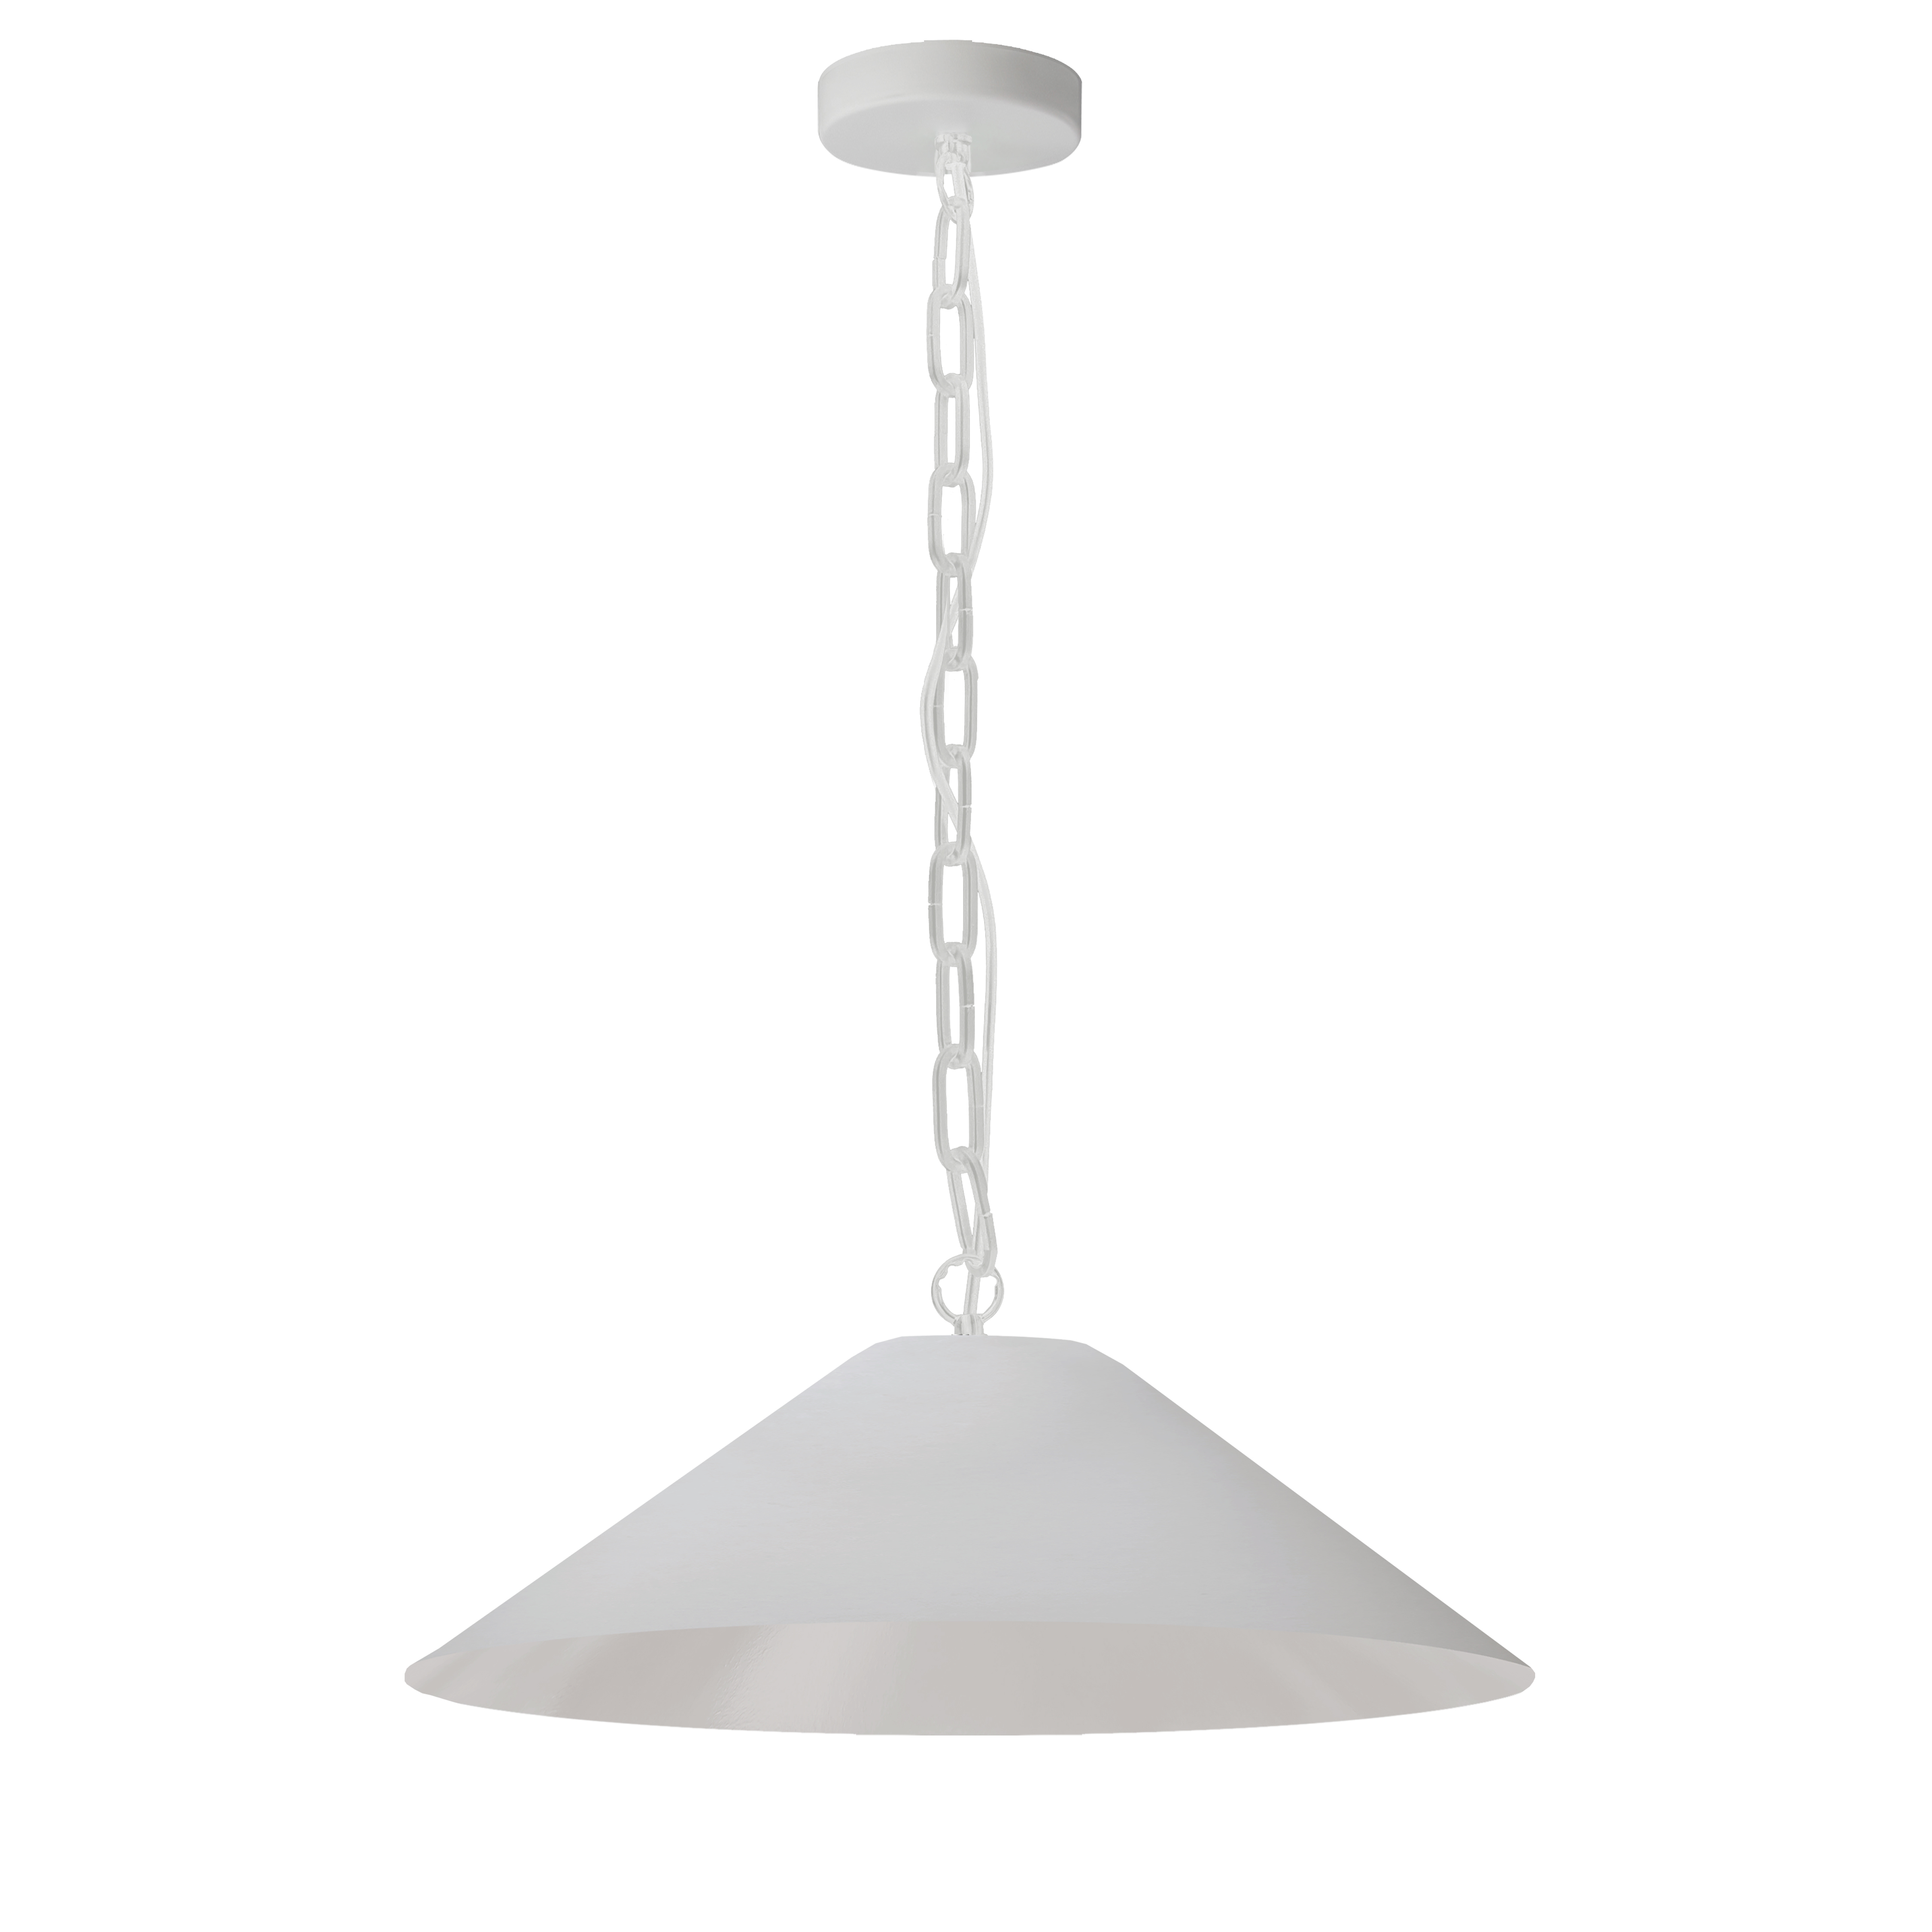 1LT Incandescent Pendant, MW w/ WH Shade